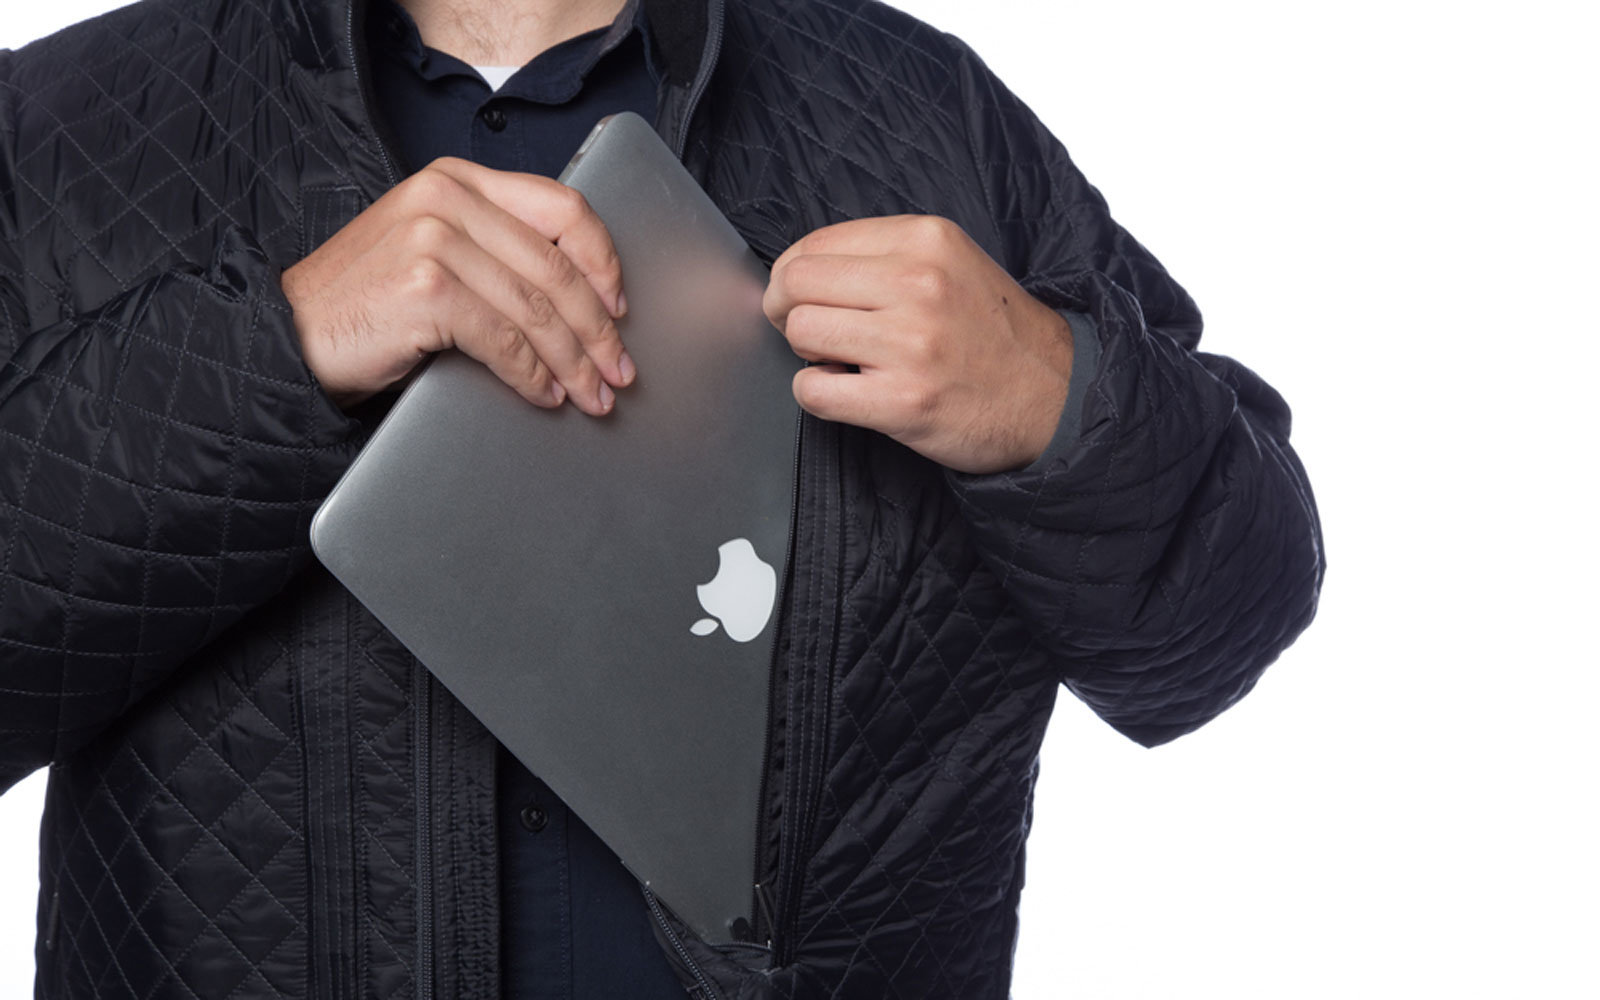 The new SCOTTeVEST jacket can hold two laptops, plus every other device you own.